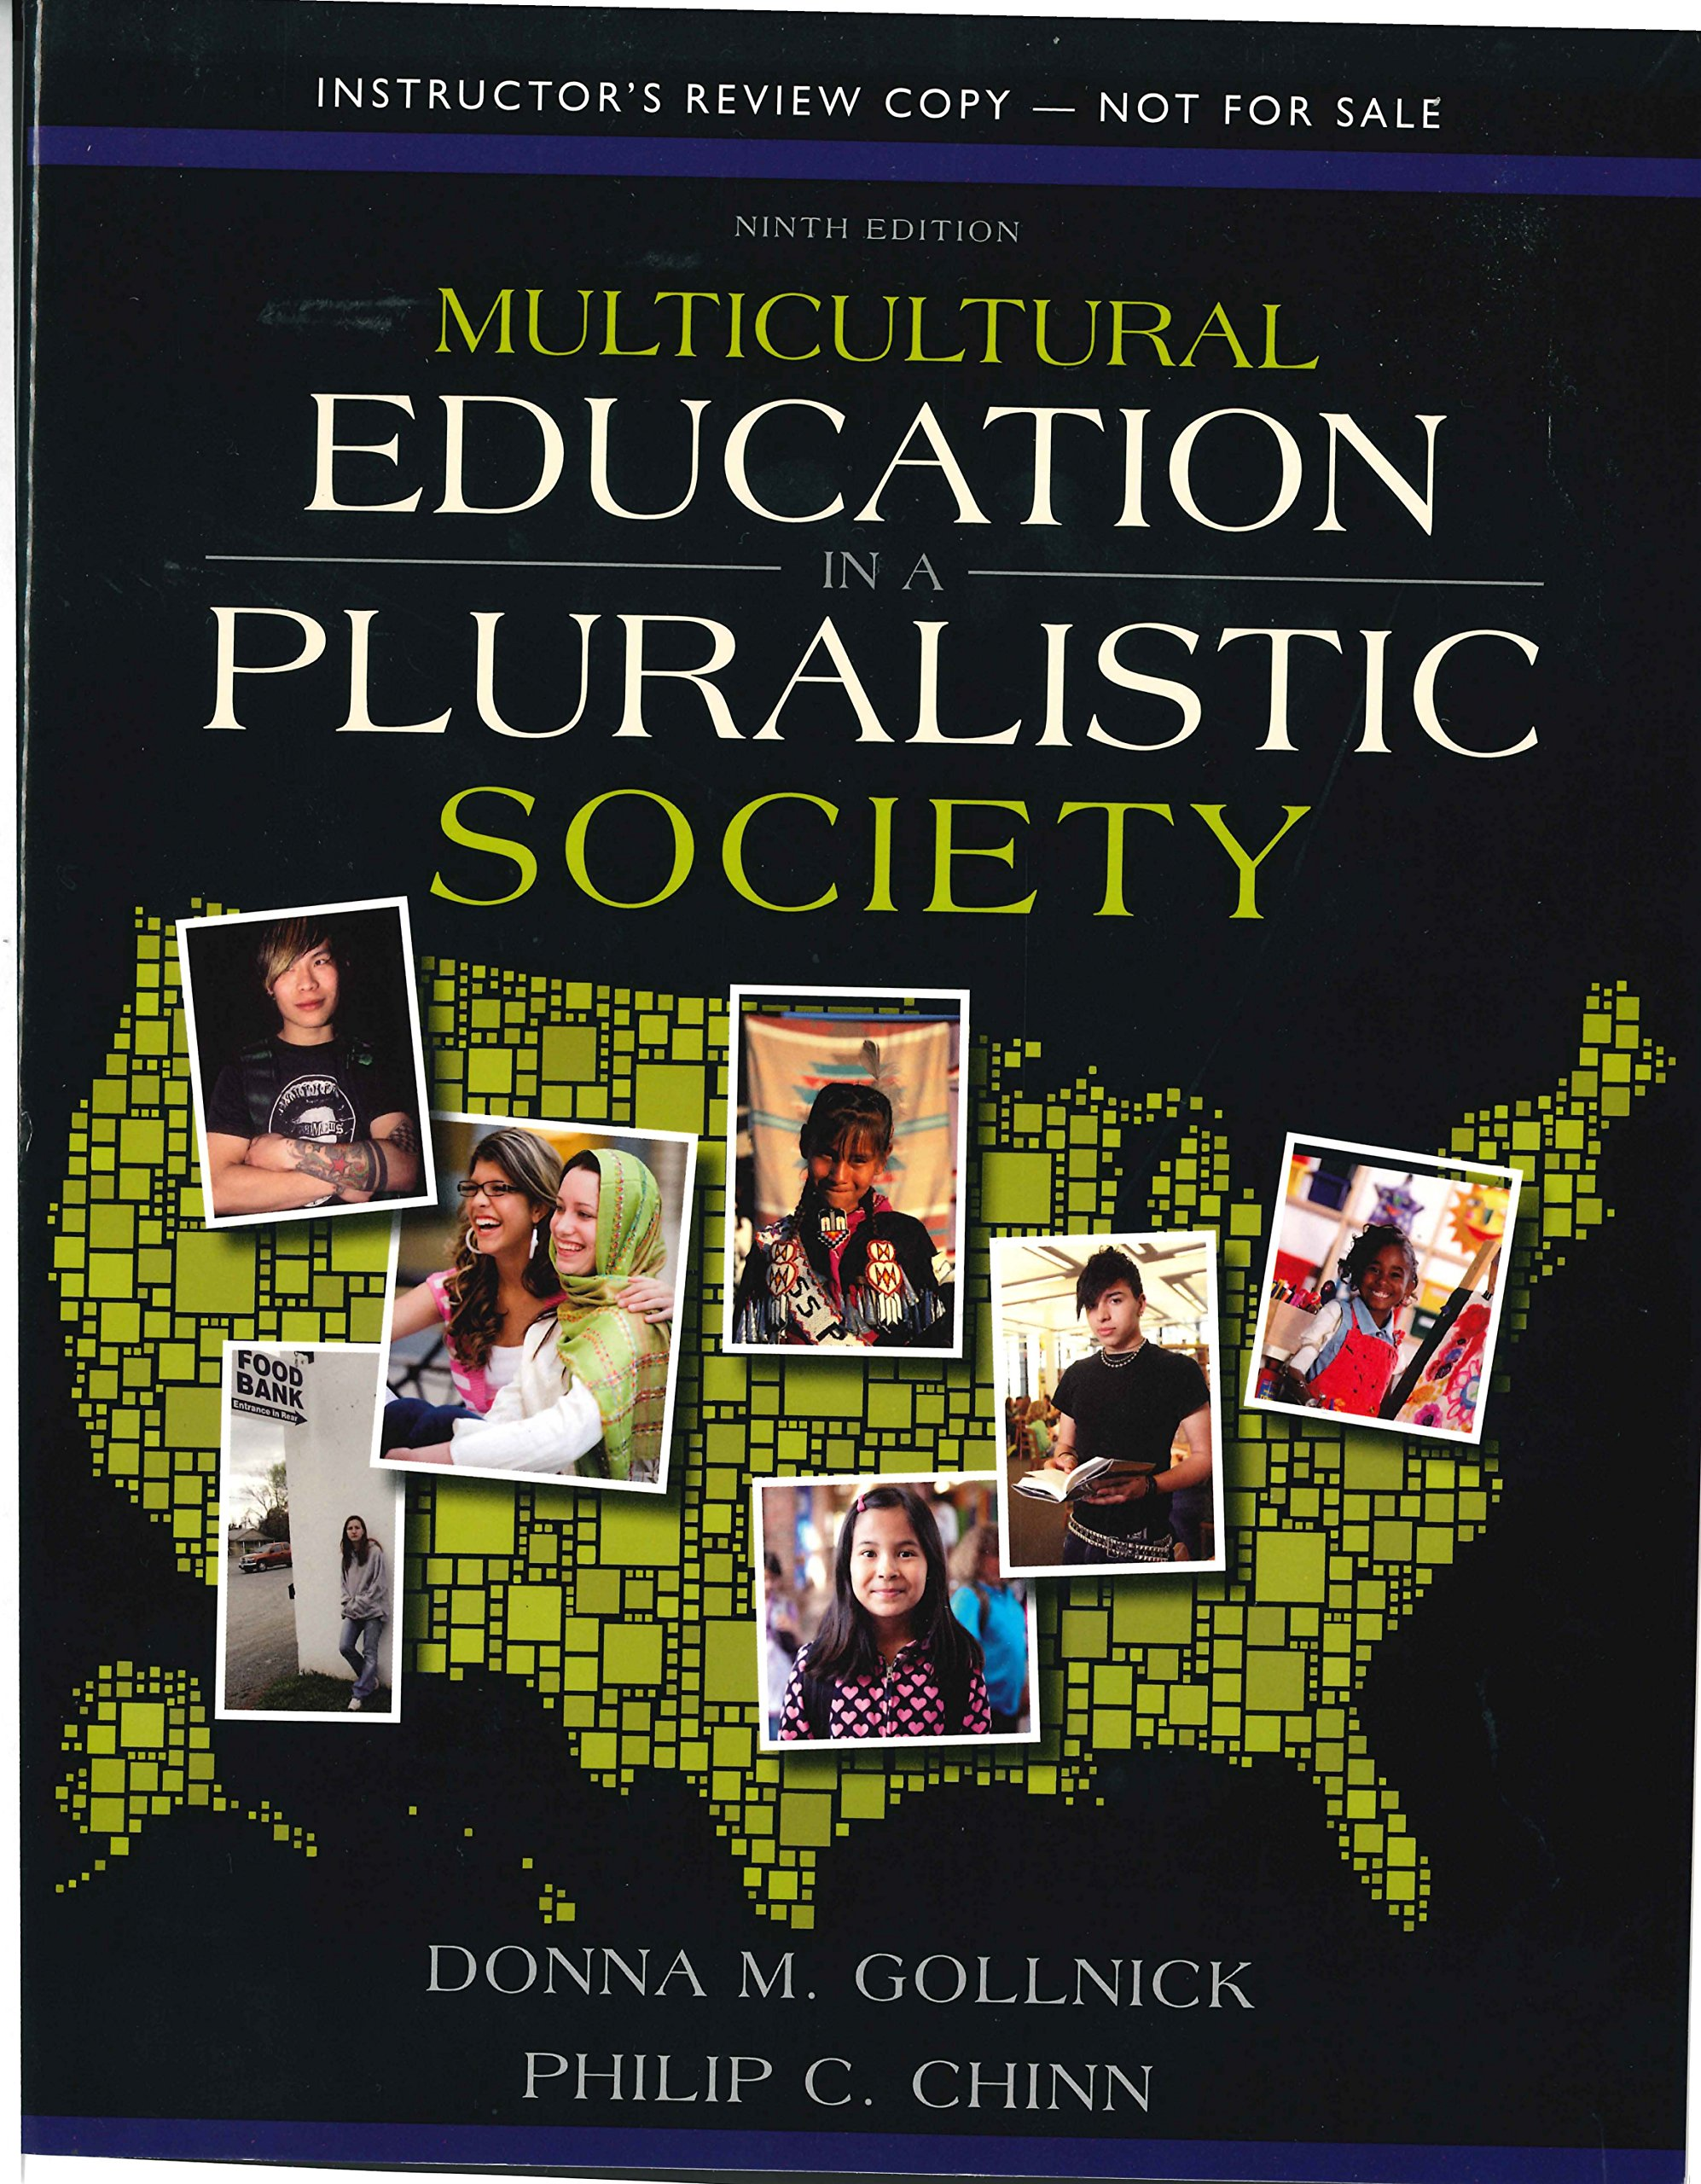 Download I.e. Multicutural Education in a Pluralistic Society 9th.edition Gollnick pdf epub